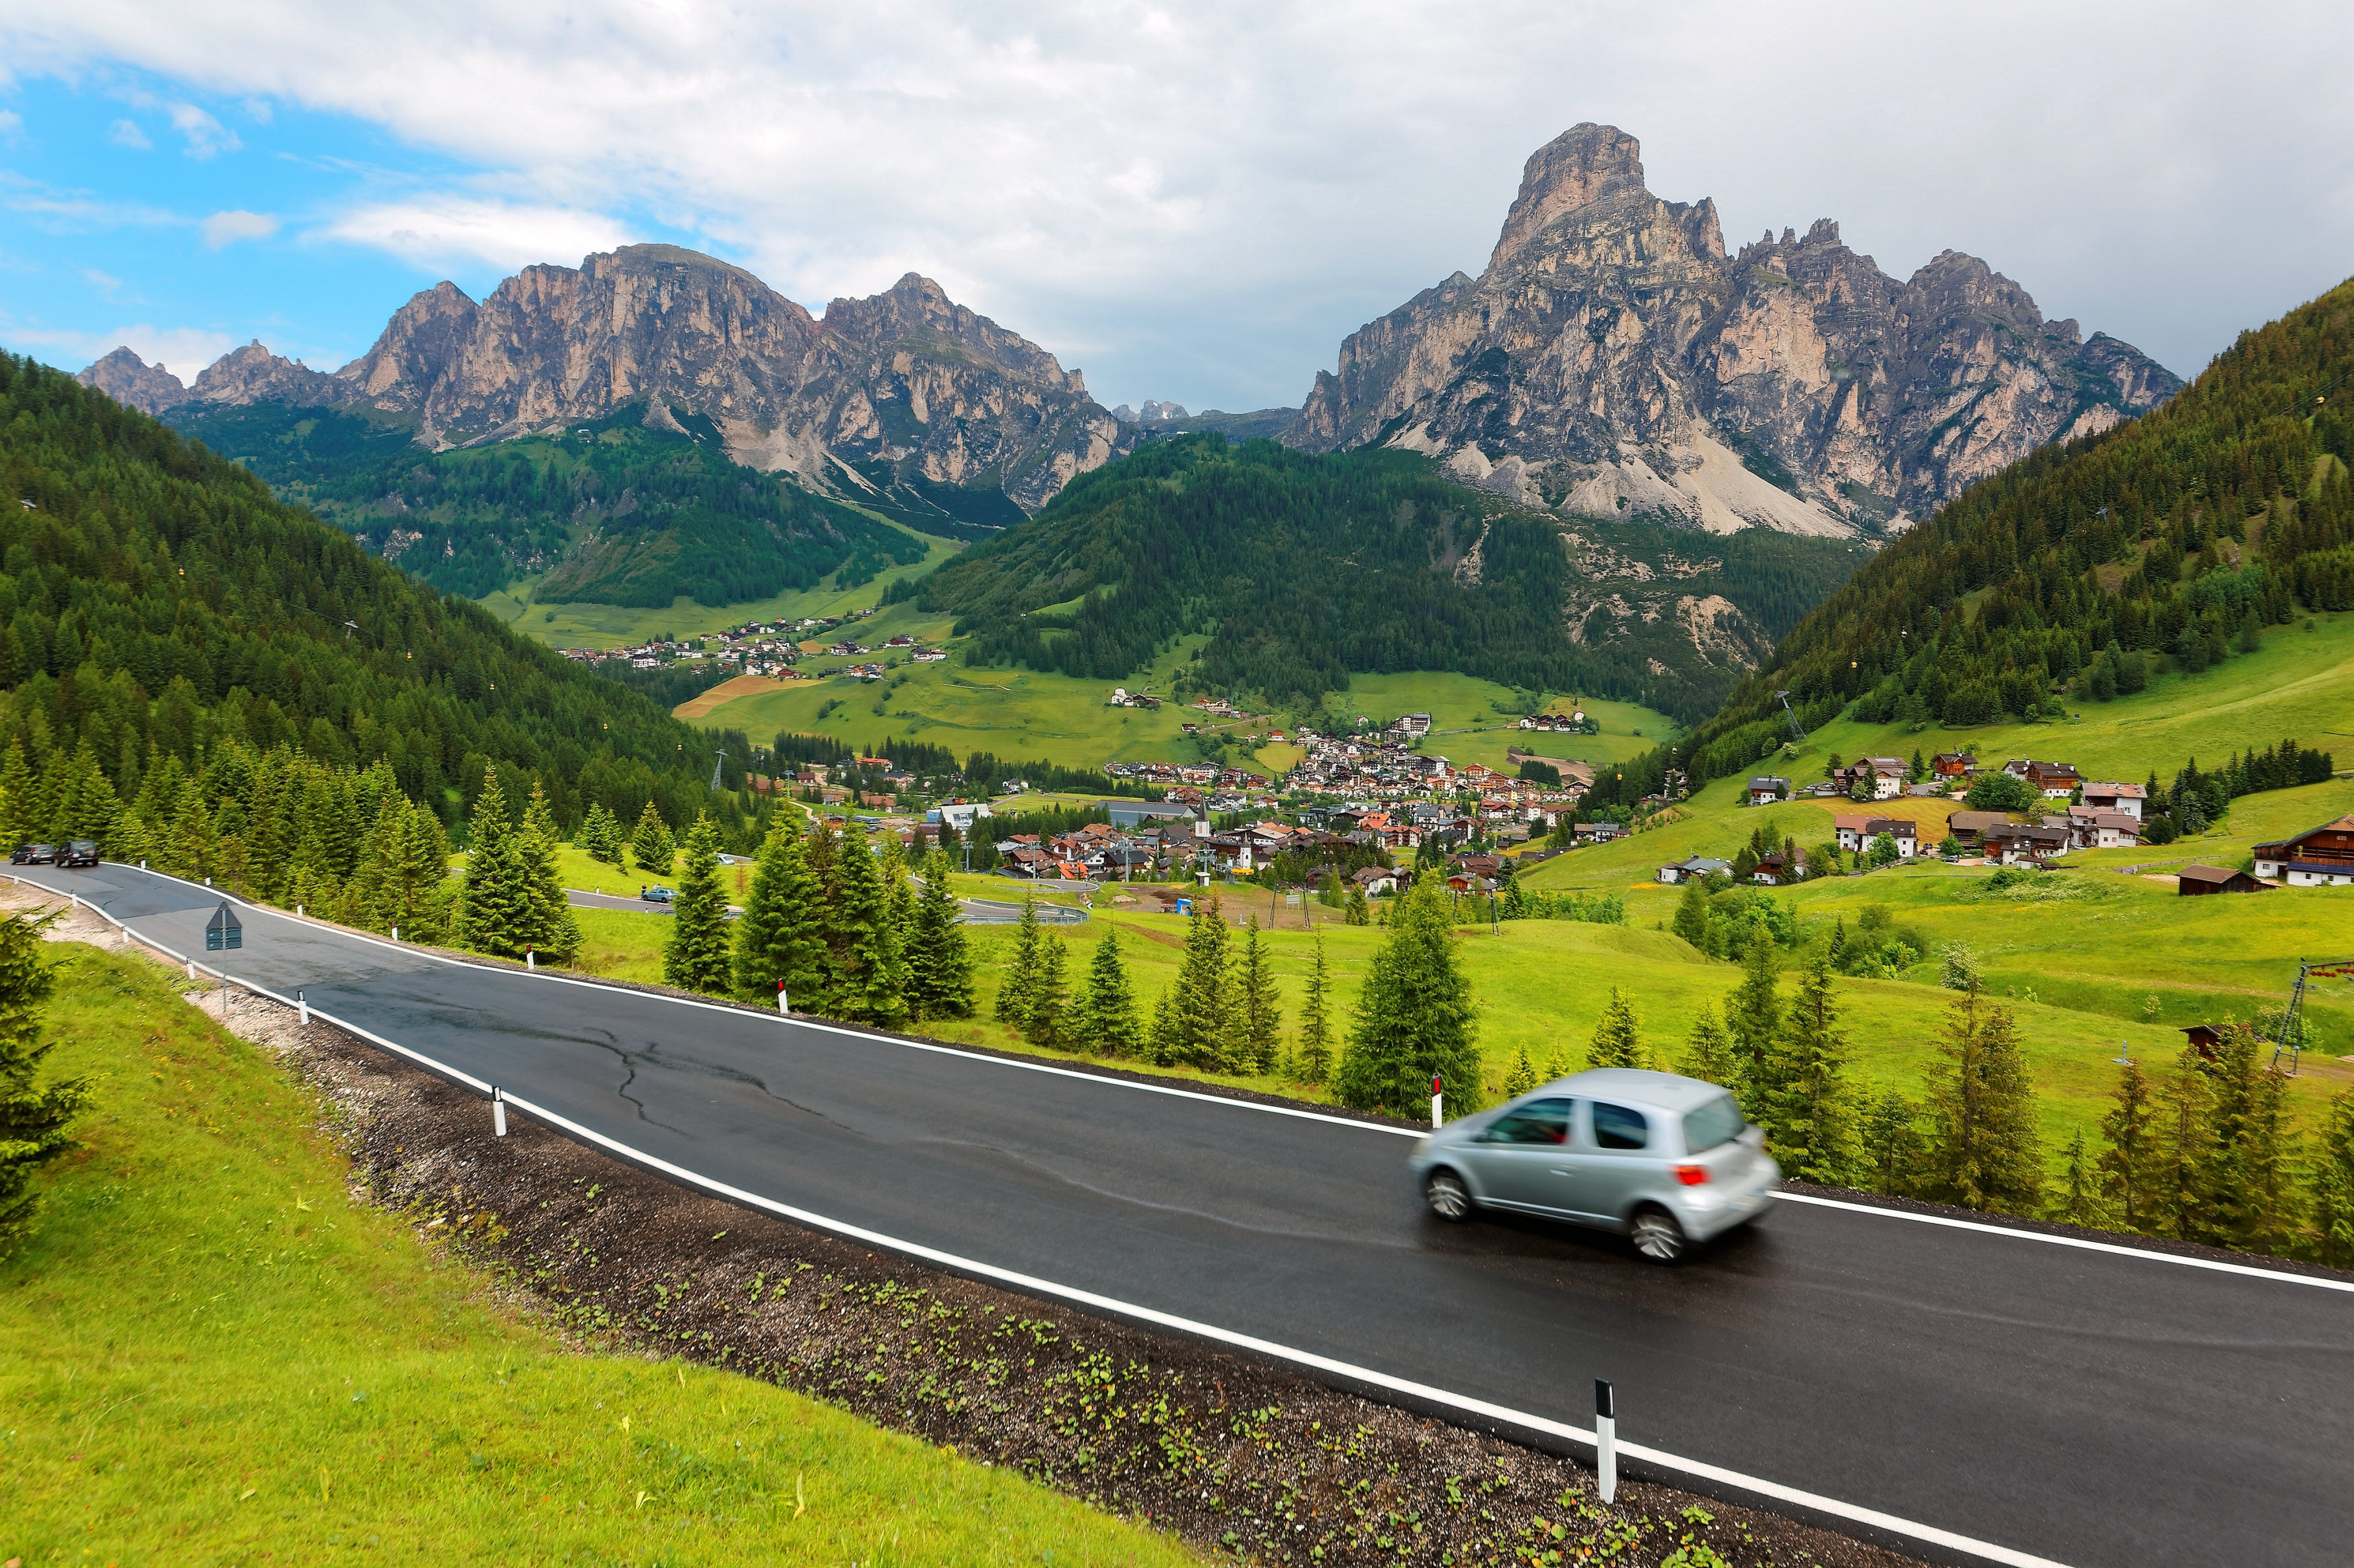 USAA-Community-Tips-For-Driving-Overseas2small.jpg